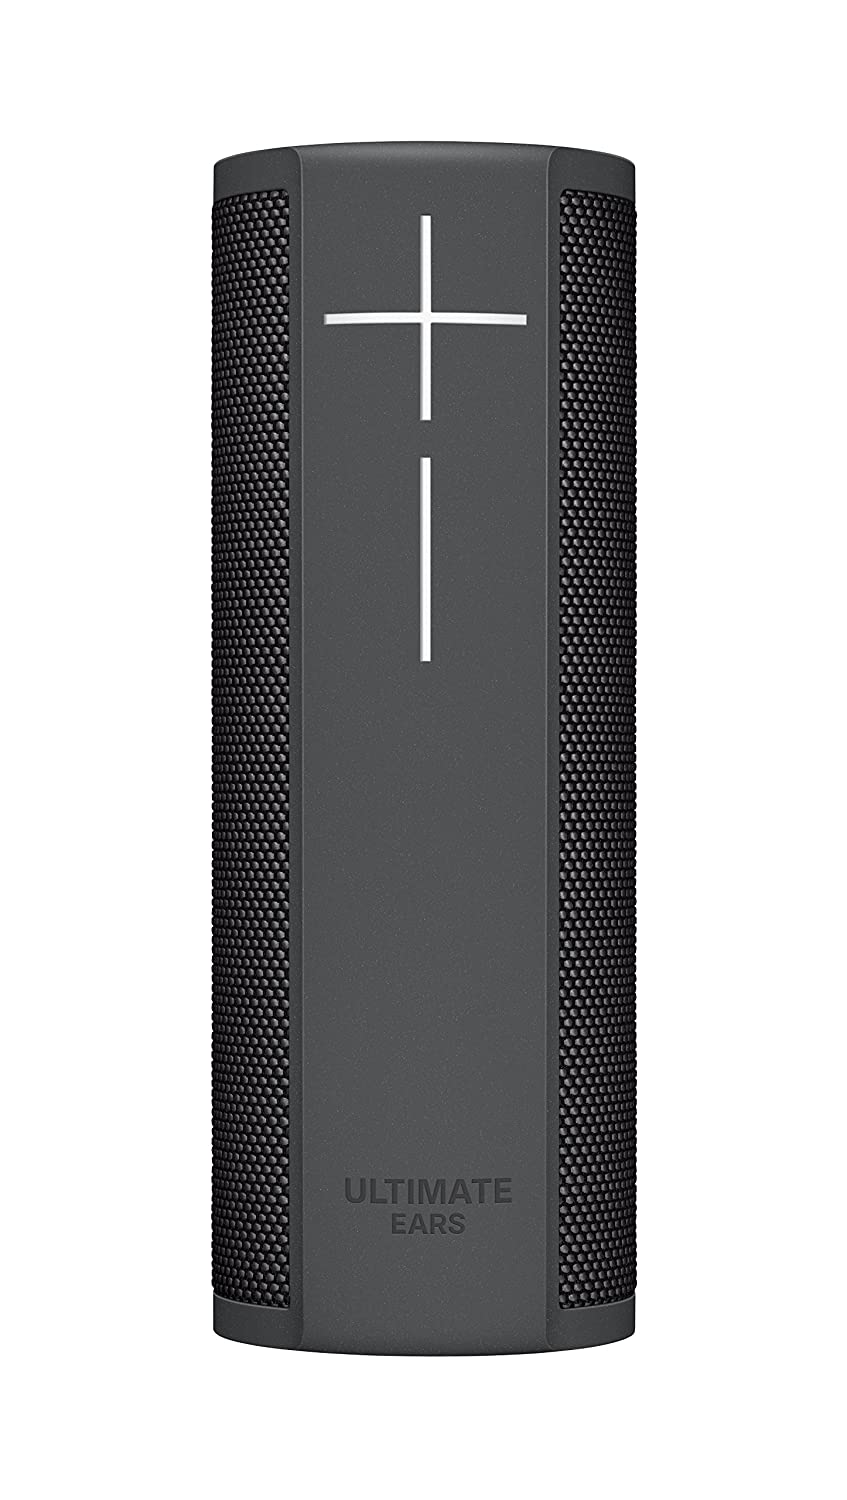 $ 154 Ultimate Ears BLAST Portable Wi-Fi Bluetooth Speaker, Graphite Black